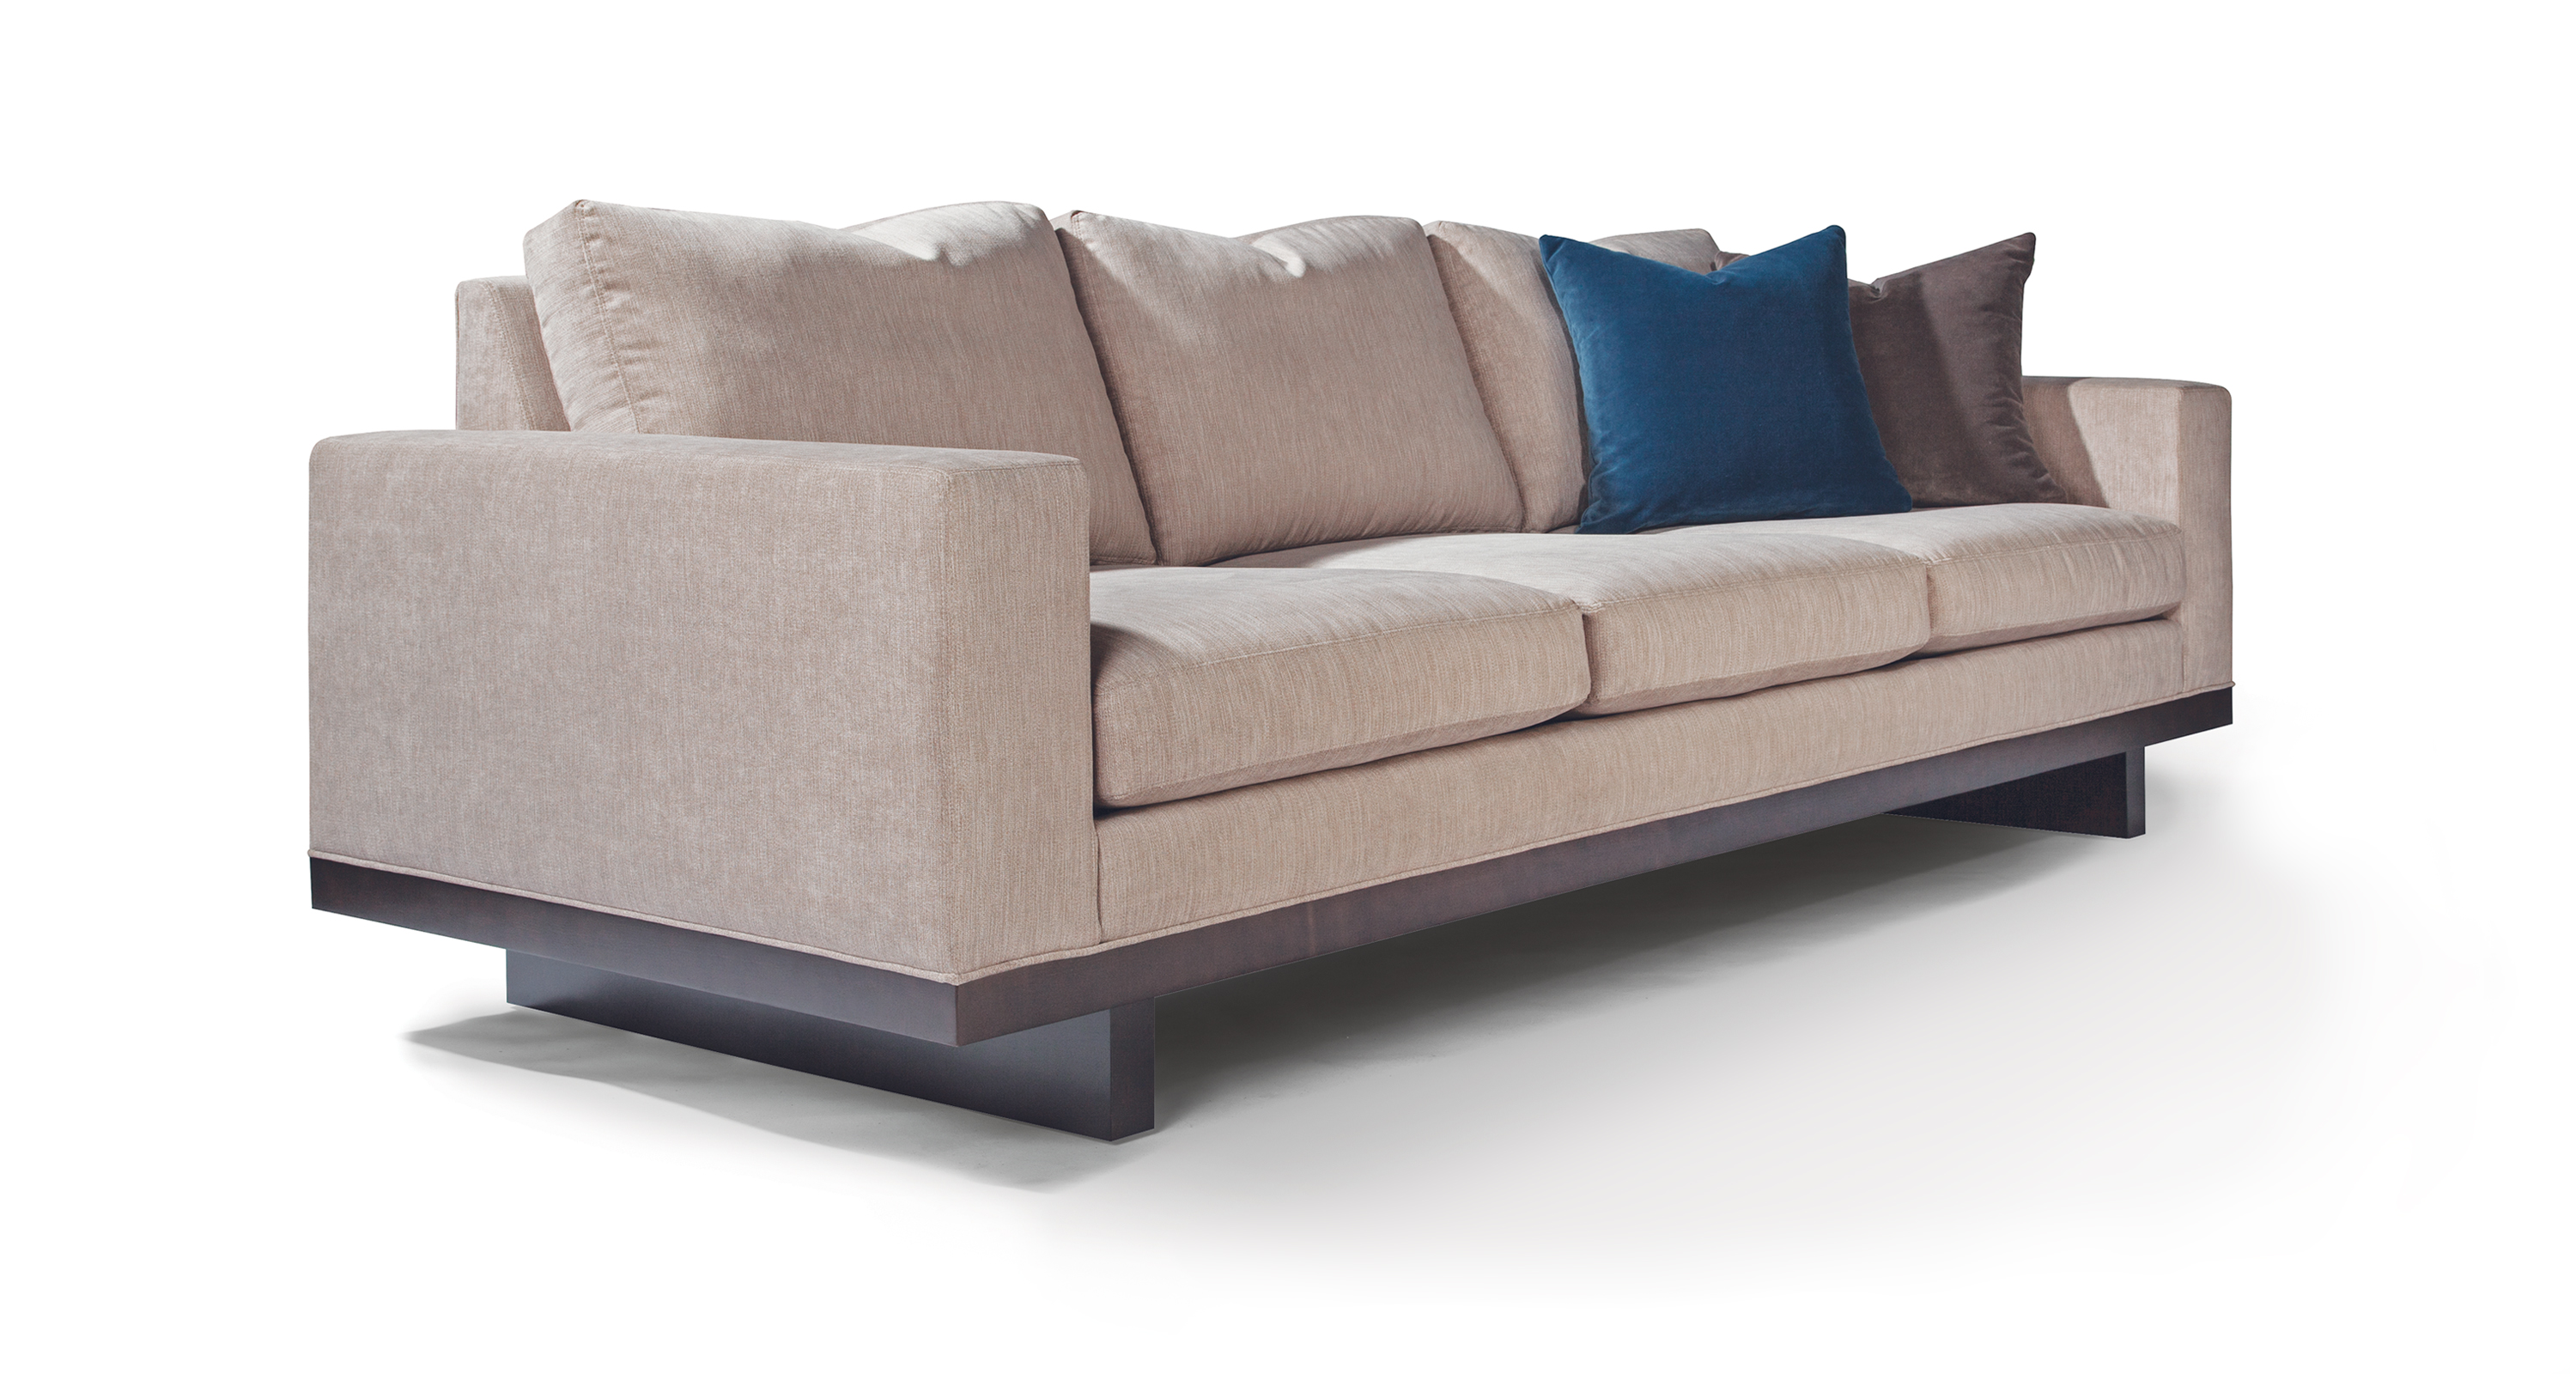 The LA Collection Sofa